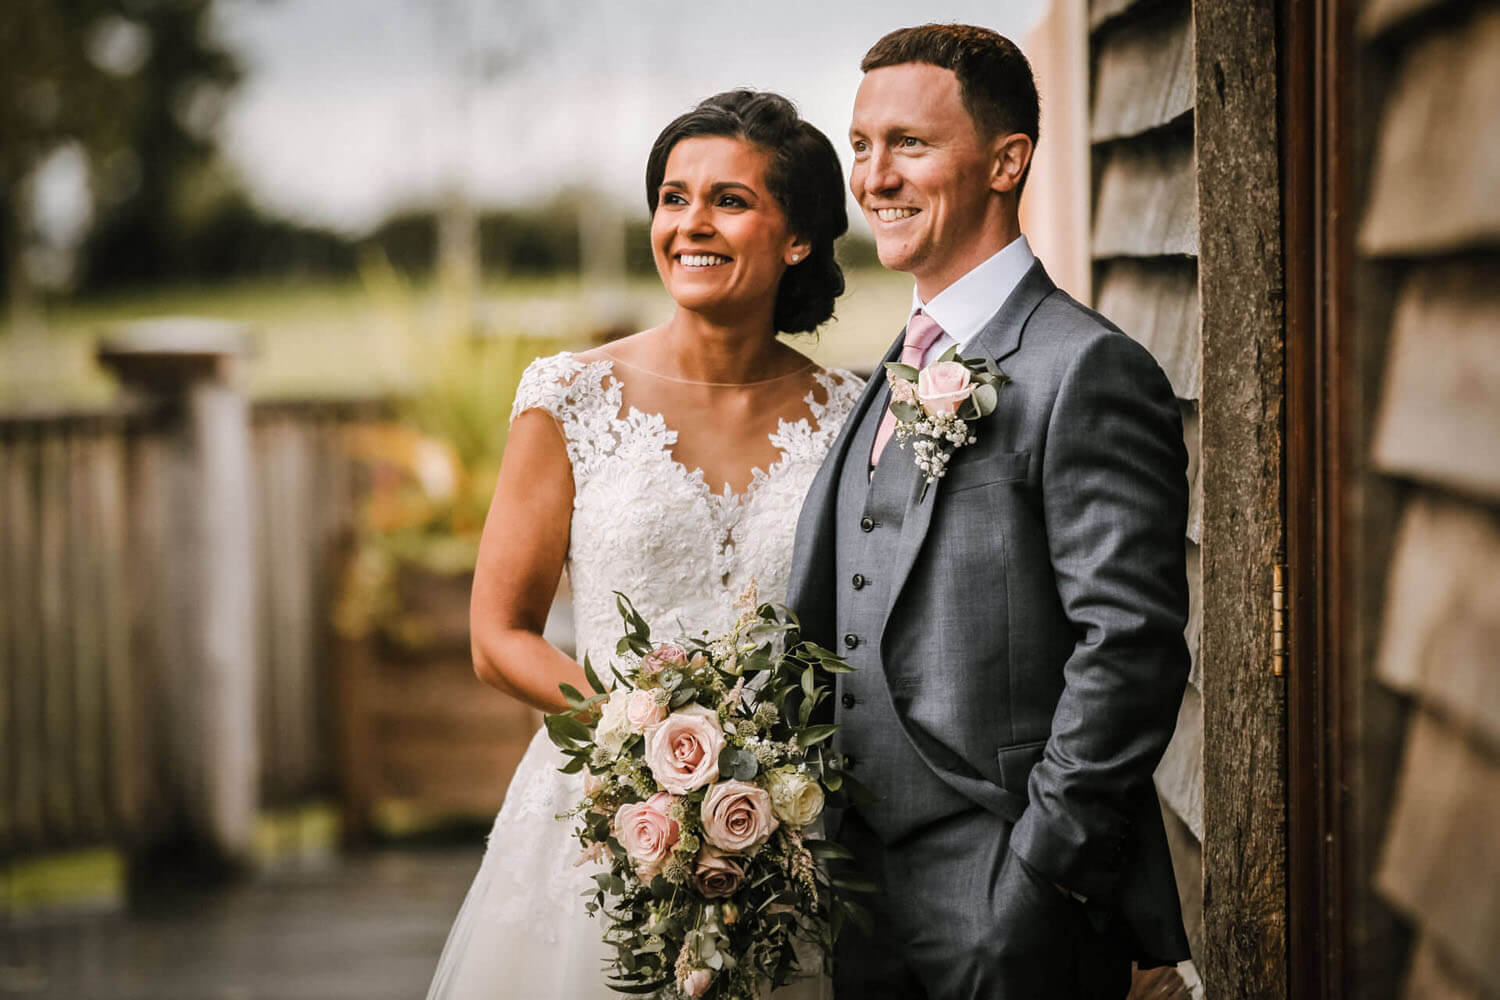 Colourful picture of Smiling bride and groom